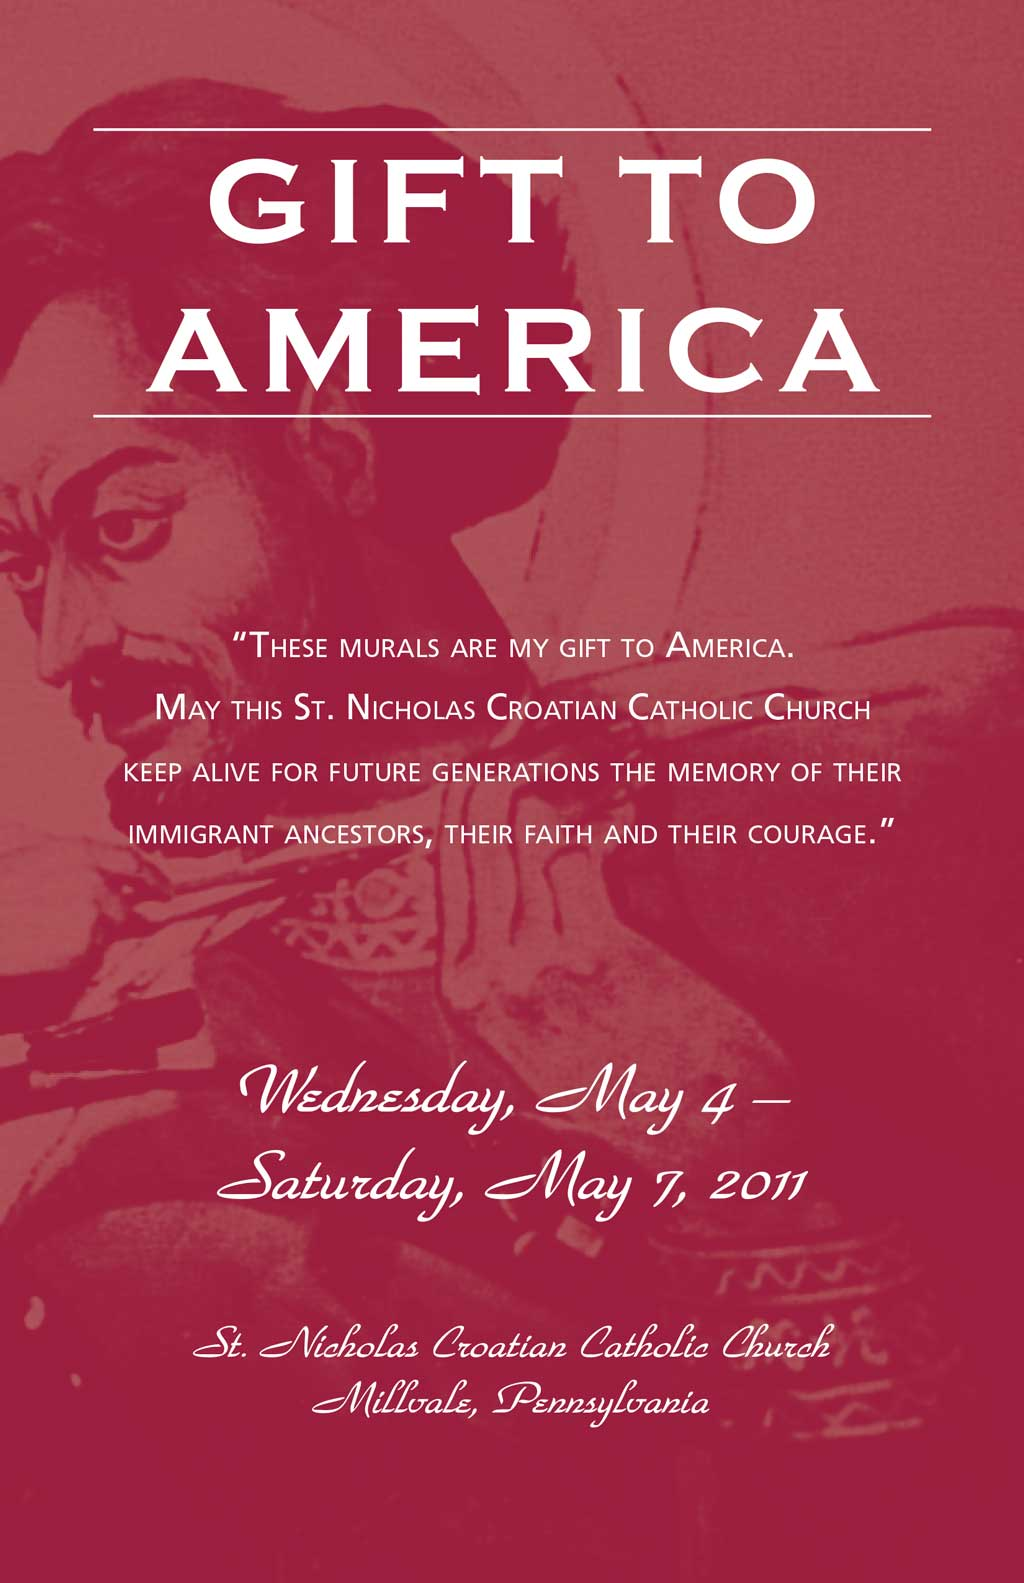 Gift to America Program Cover